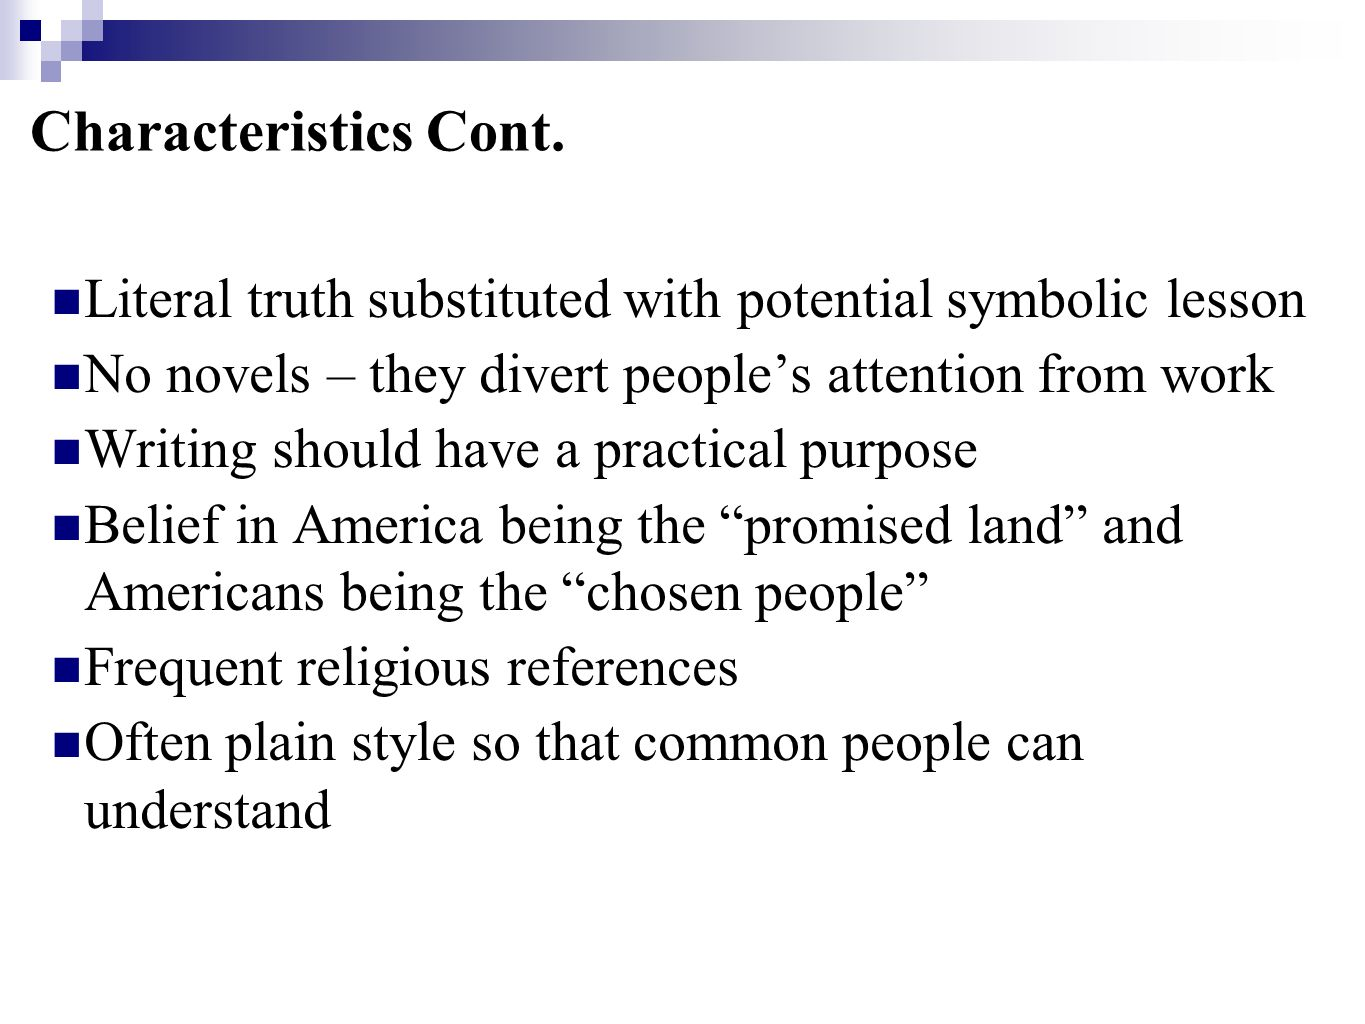 """American literary movements """"Colonial Period"""" - ppt video online ..."""